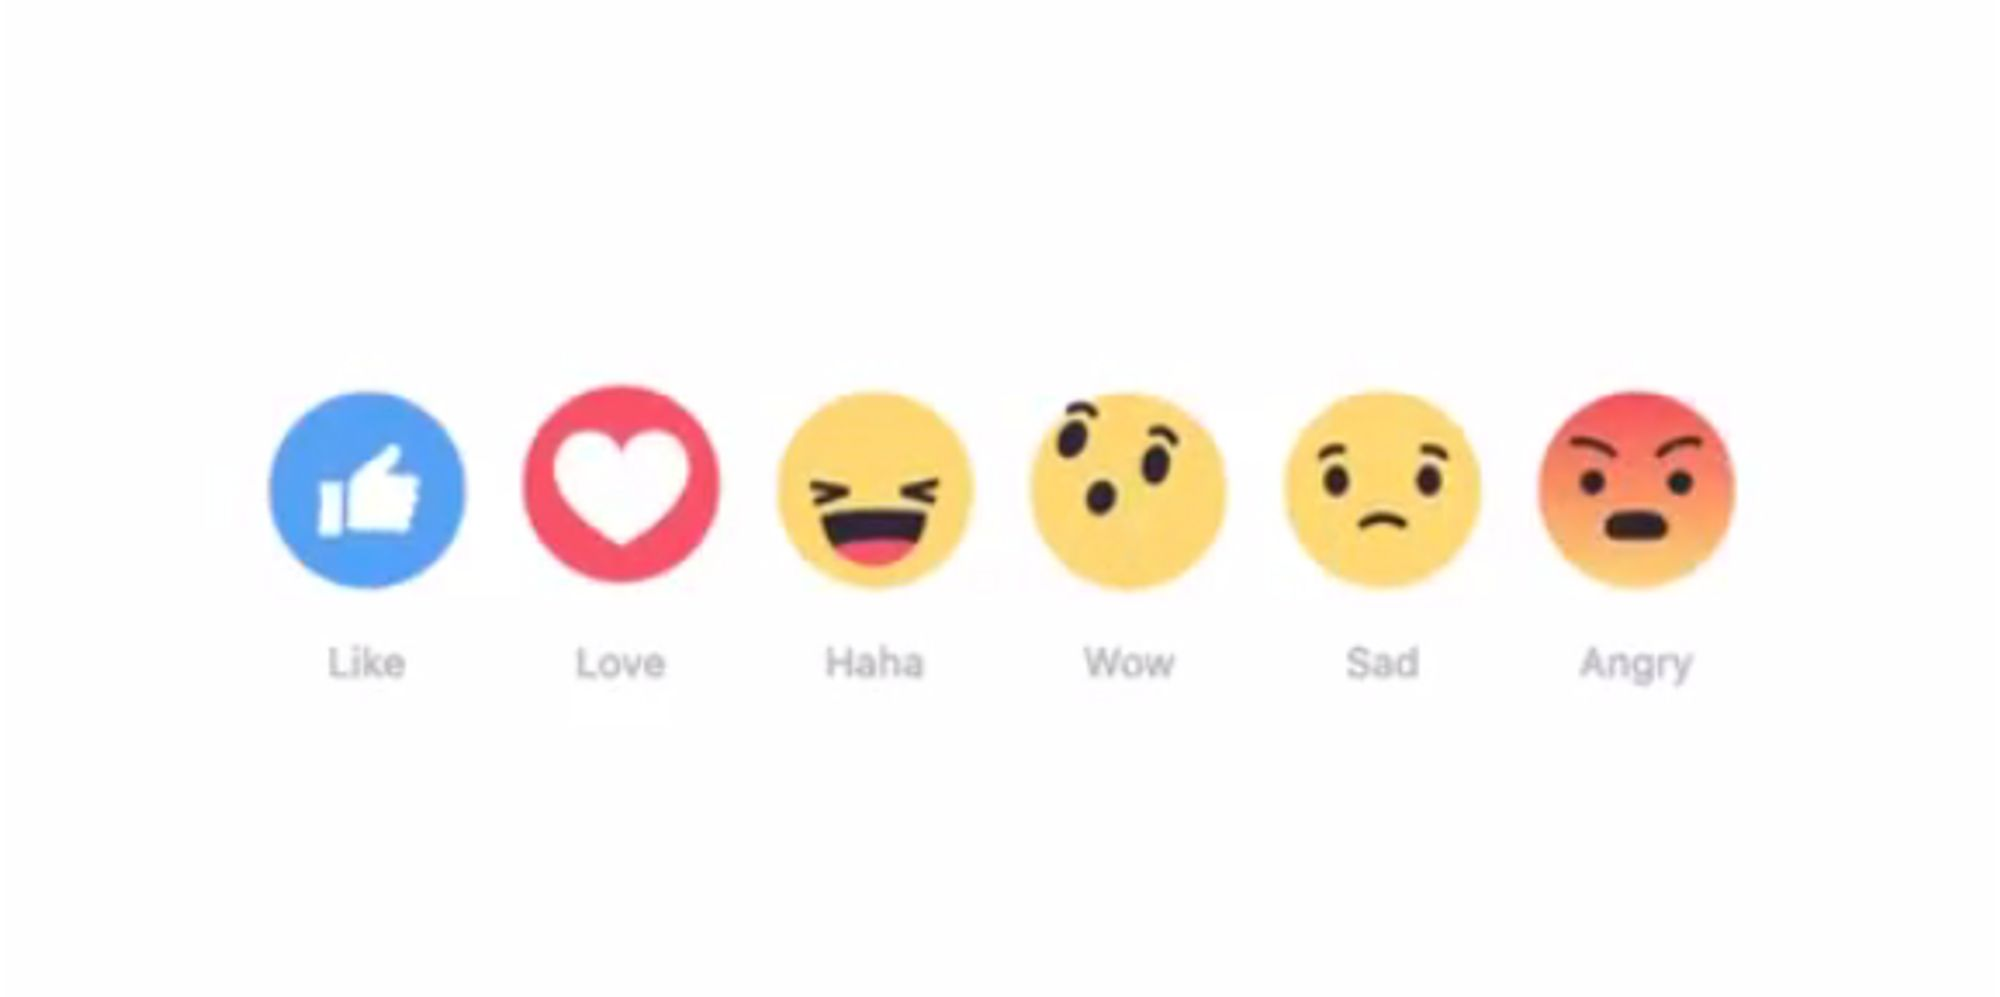 Facebook Prioritizes What Makes You 'Sad' or 'Angry' Over What You 'Like'